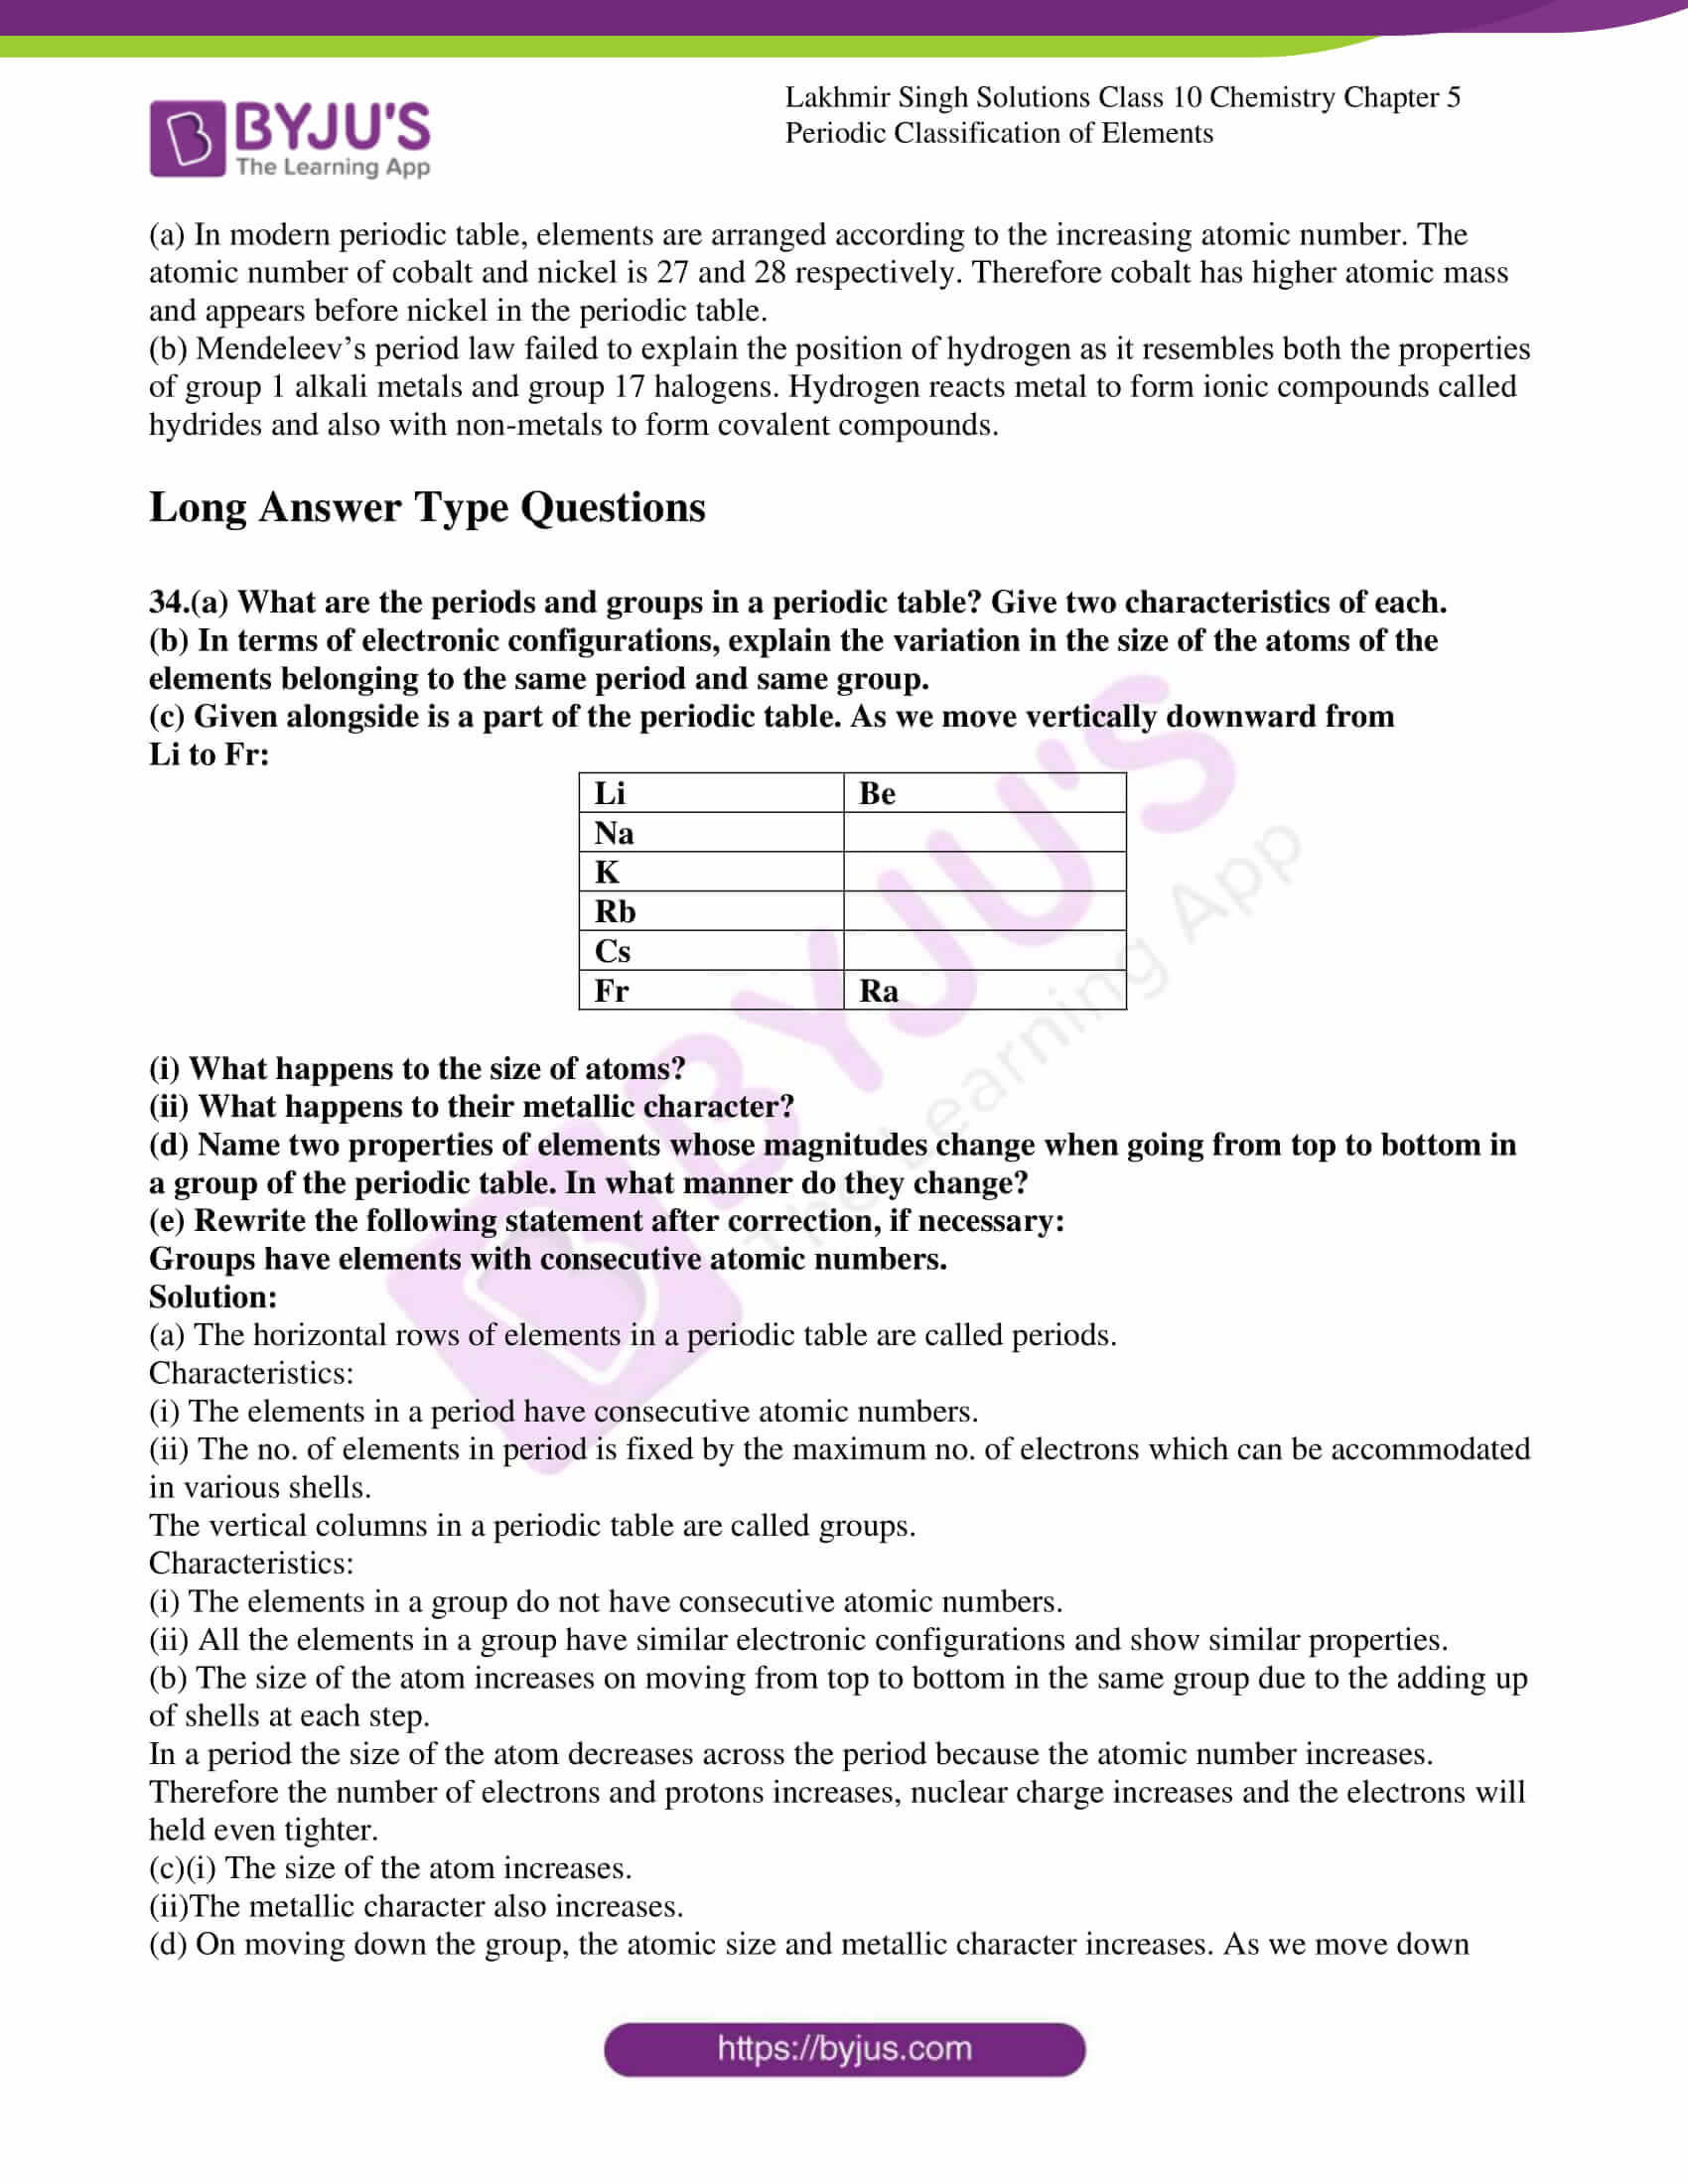 lakhmir singh solutions class 10 chemistry chapter 5 17